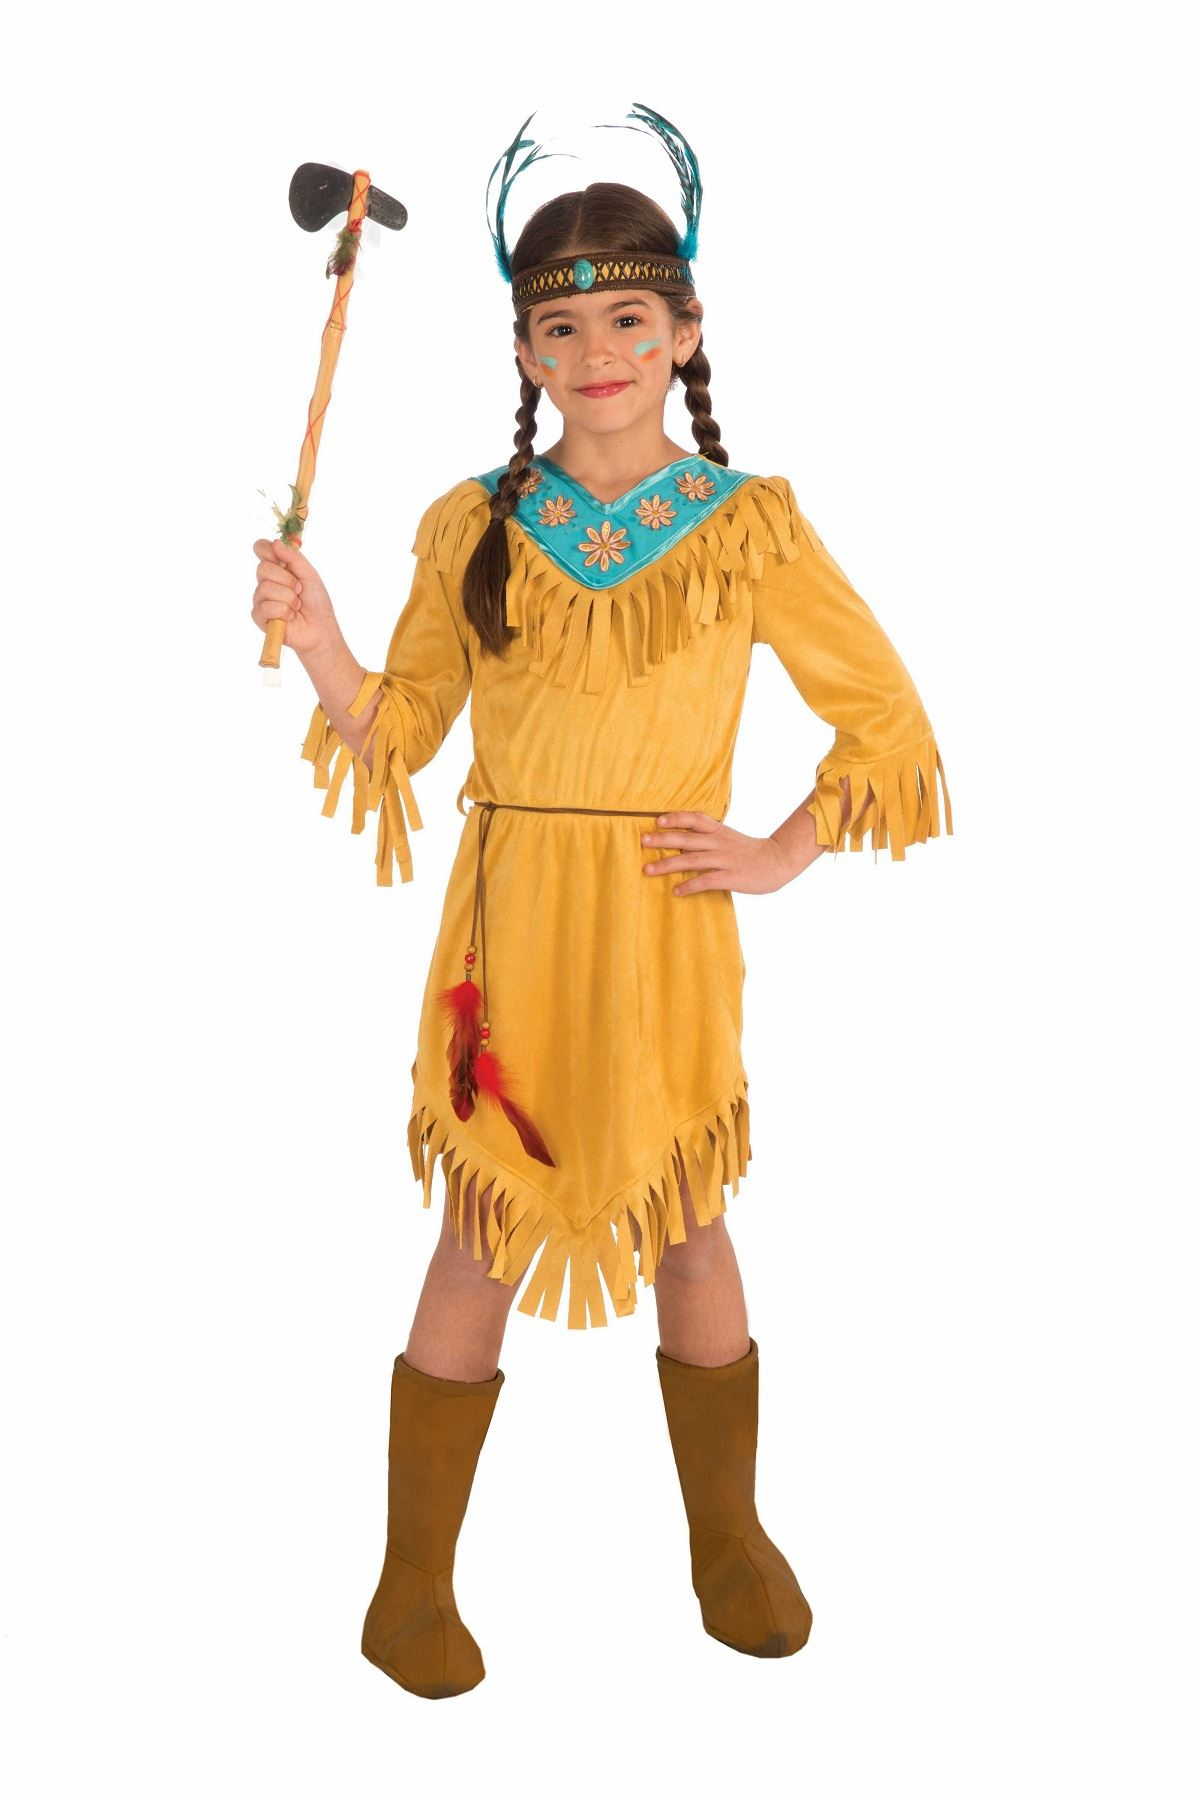 Kids Little Flower Girls Native American Costume  sc 1 st  The Costume Land & Kids Little Flower Girls Native American Costume | $35.99 | The ...